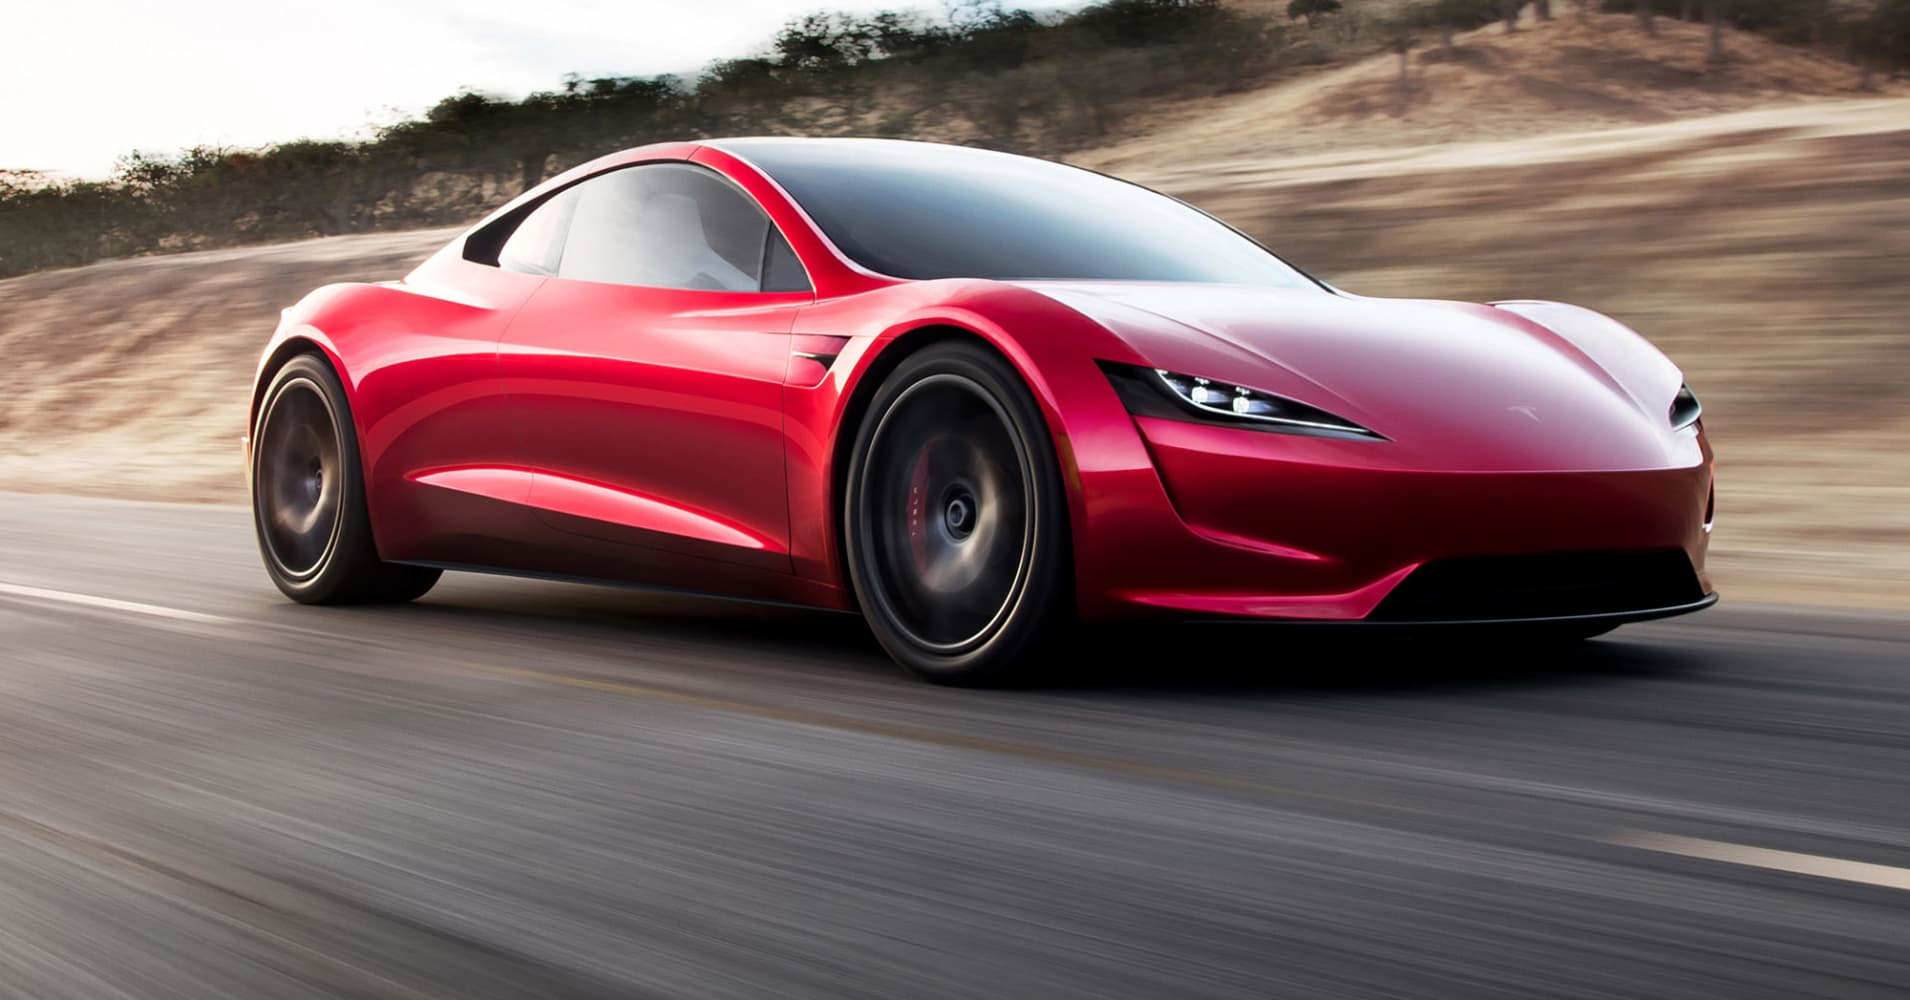 Tesla CEO Elon Musk unveils a surprise new car: A ridiculously fast Roadster